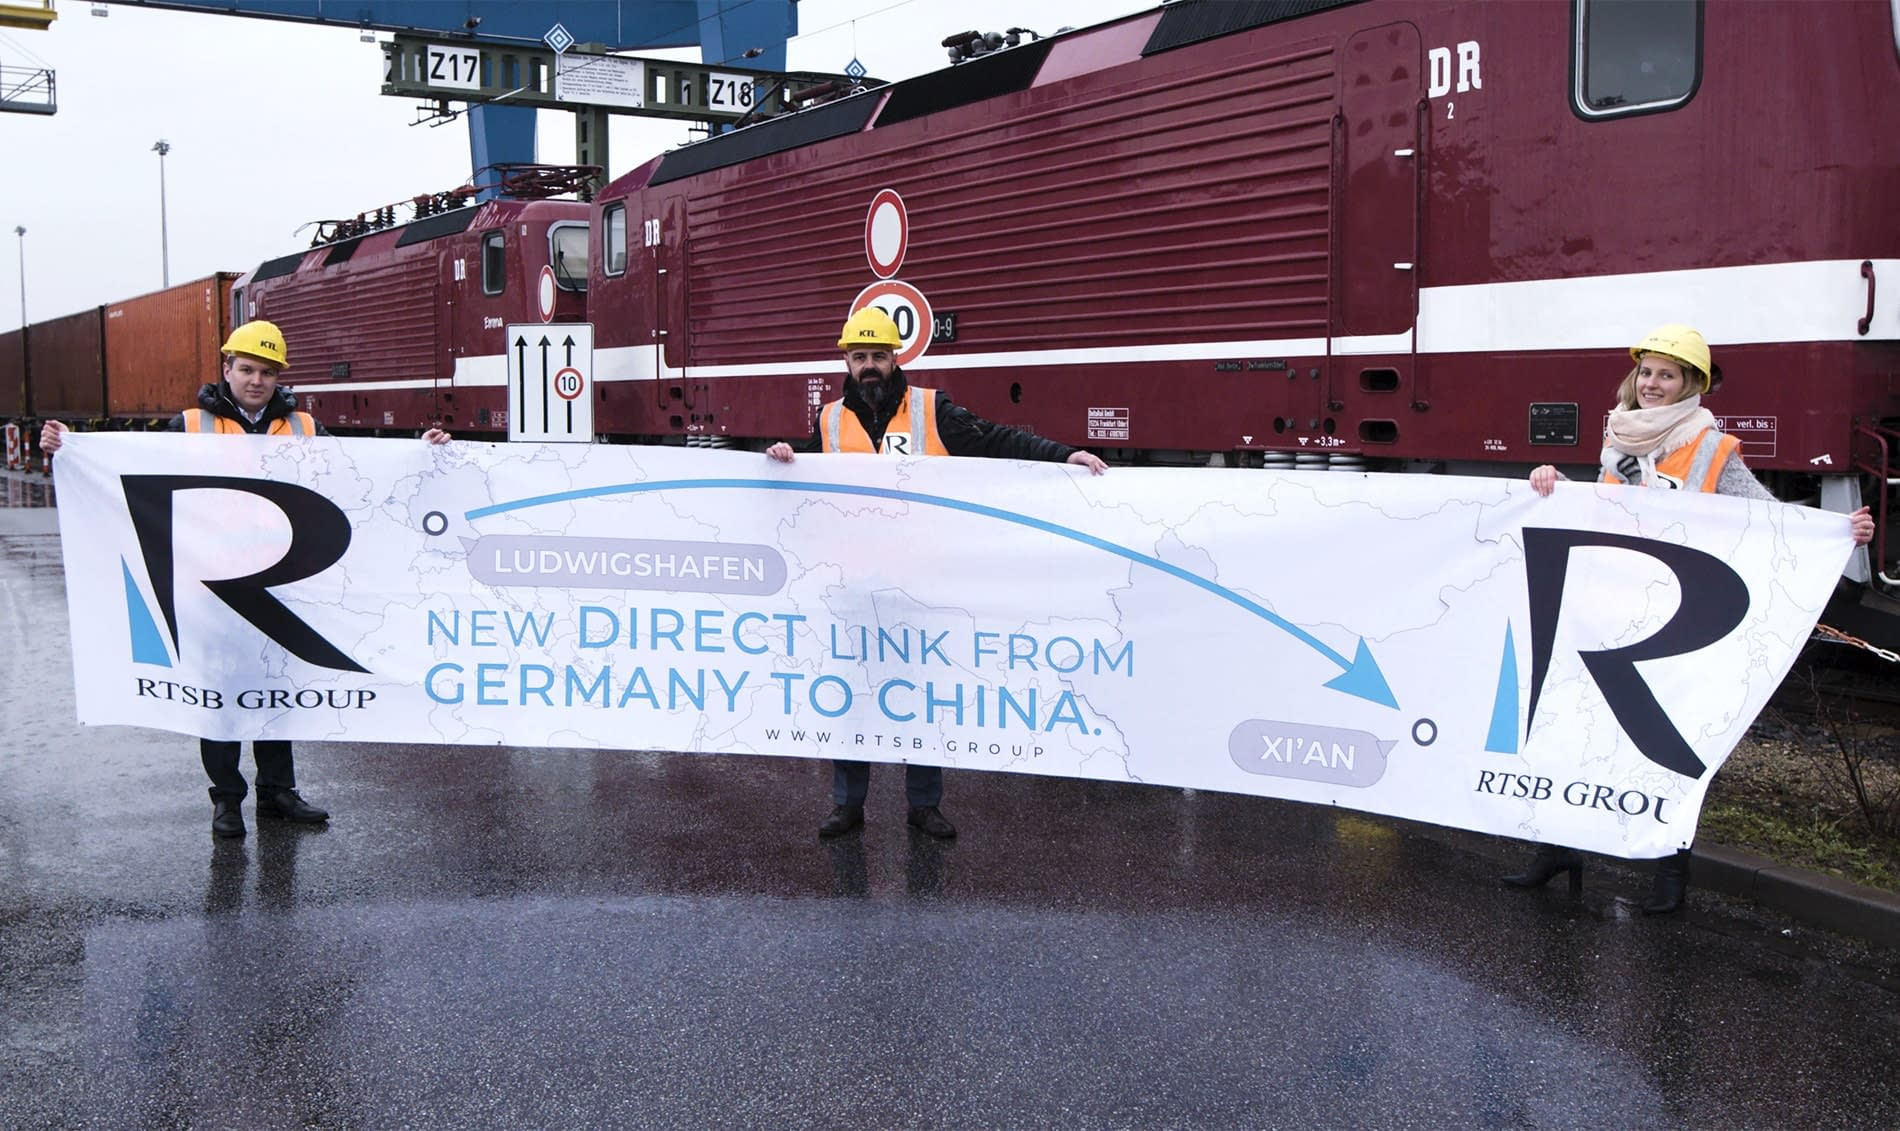 RTSB employees holding banner standing in front of container train in Ludwigshafen